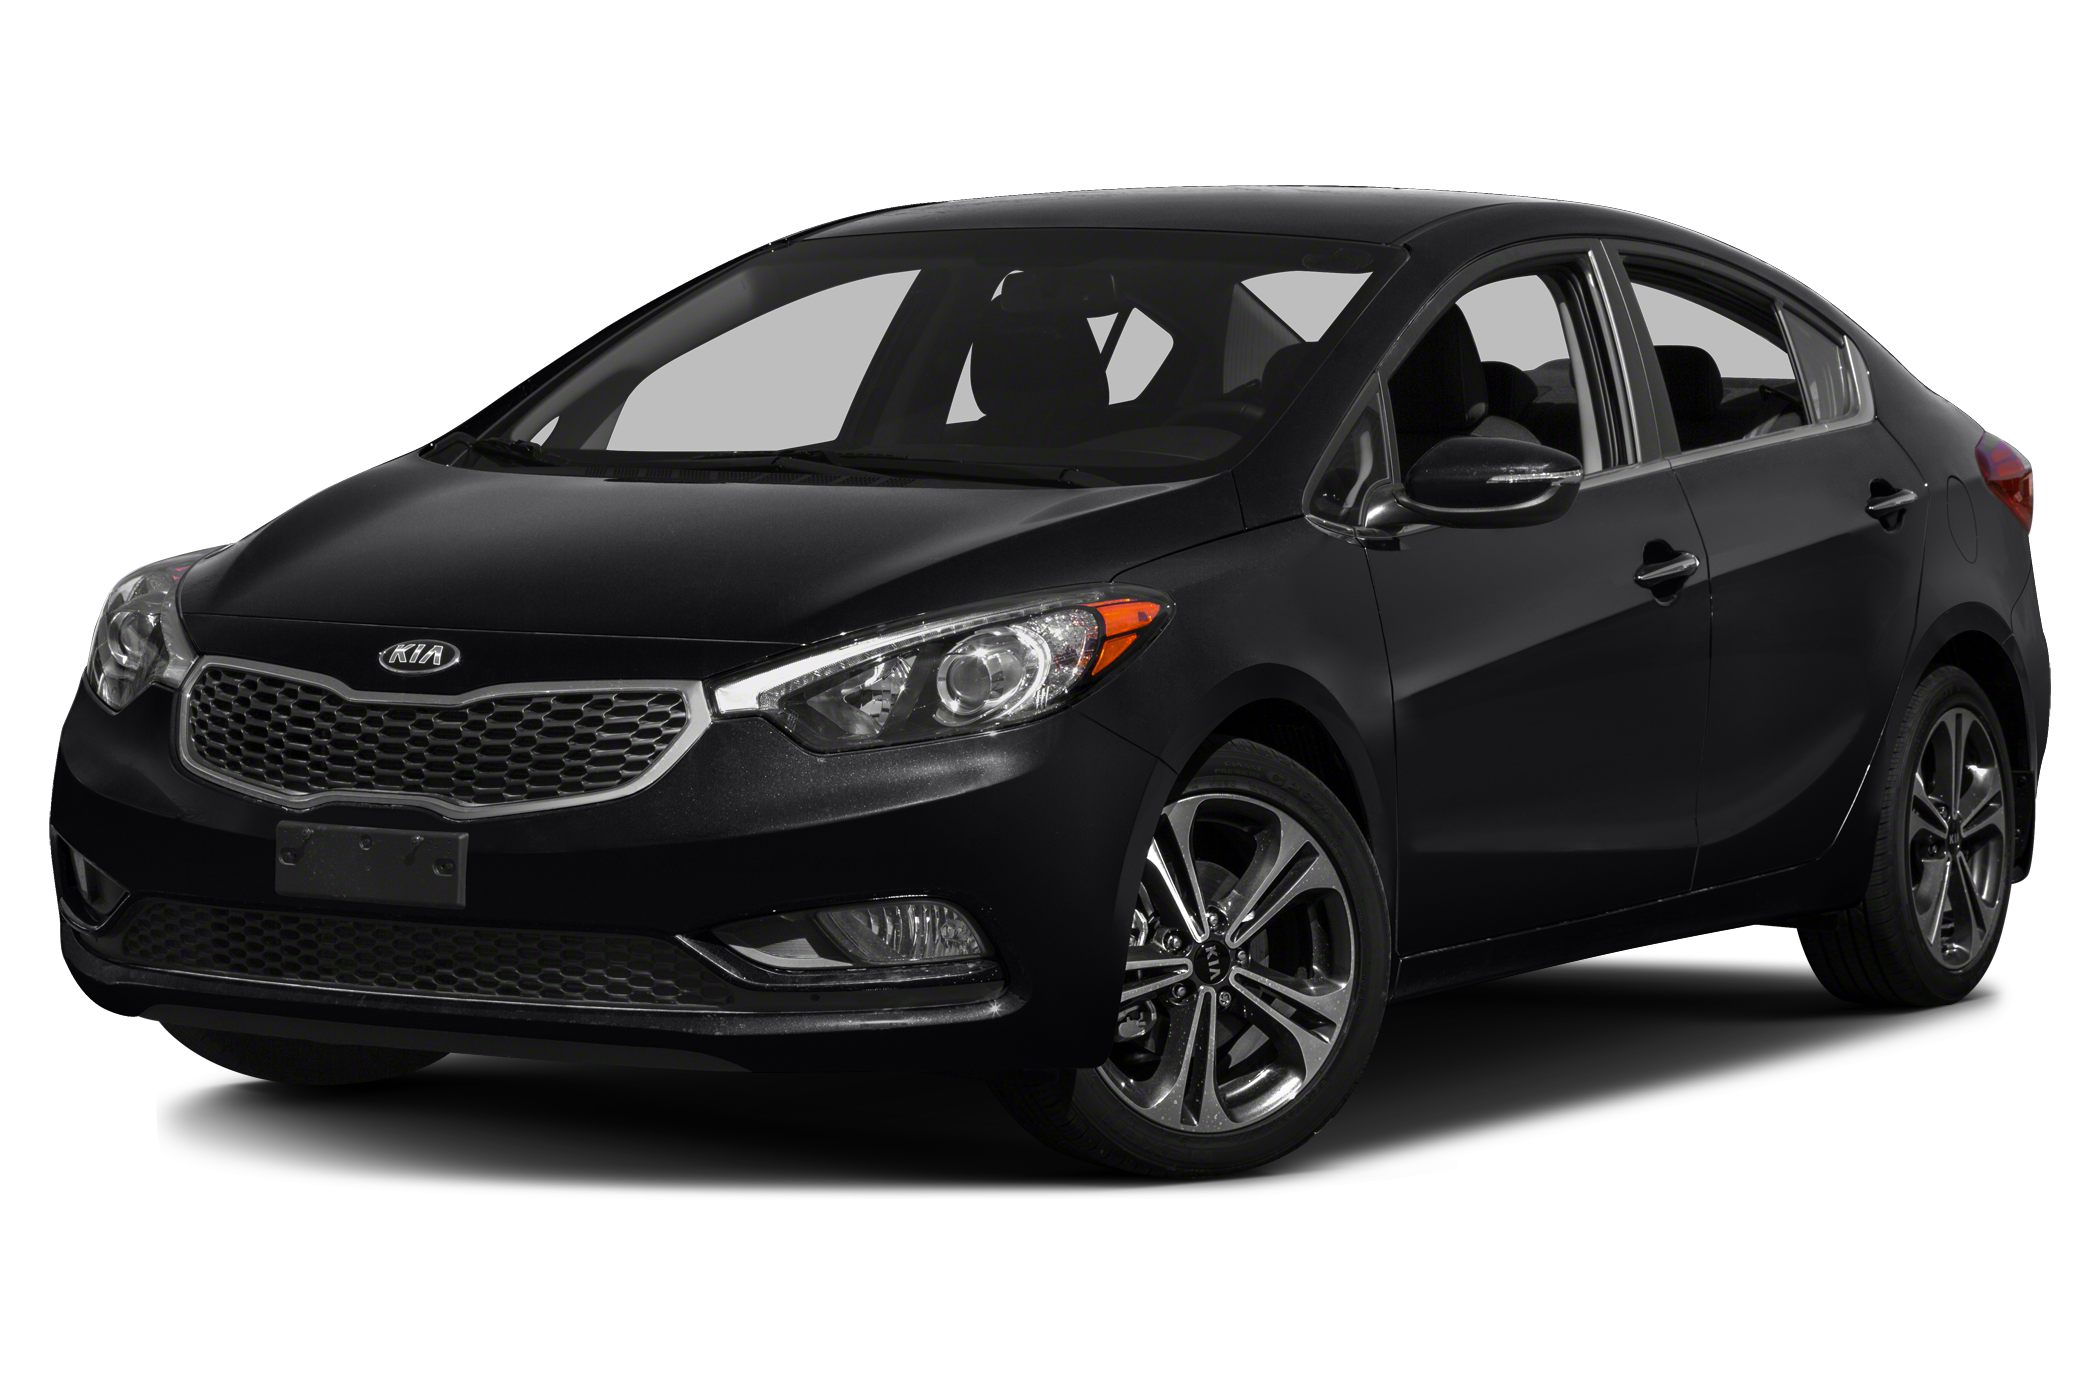 2016 Kia Forte Lx 4dr Sedan Safety Features